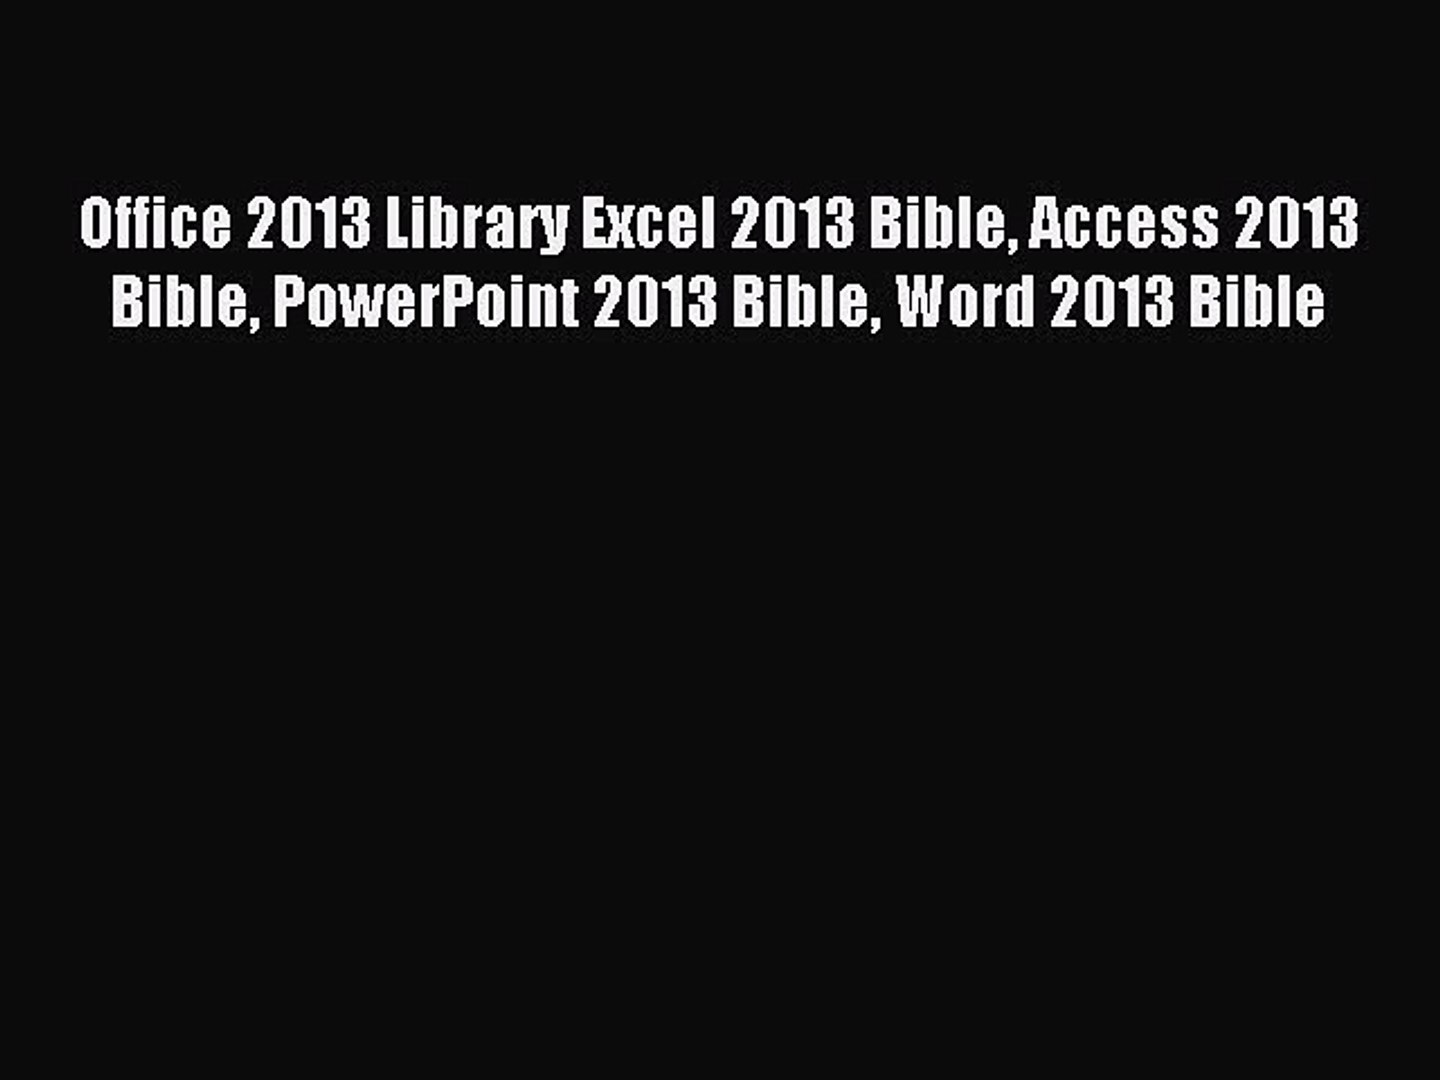 Read Office 2013 Library Excel 2013 Bible Access 2013 Bible PowerPoint 2013 Bible Word 2013